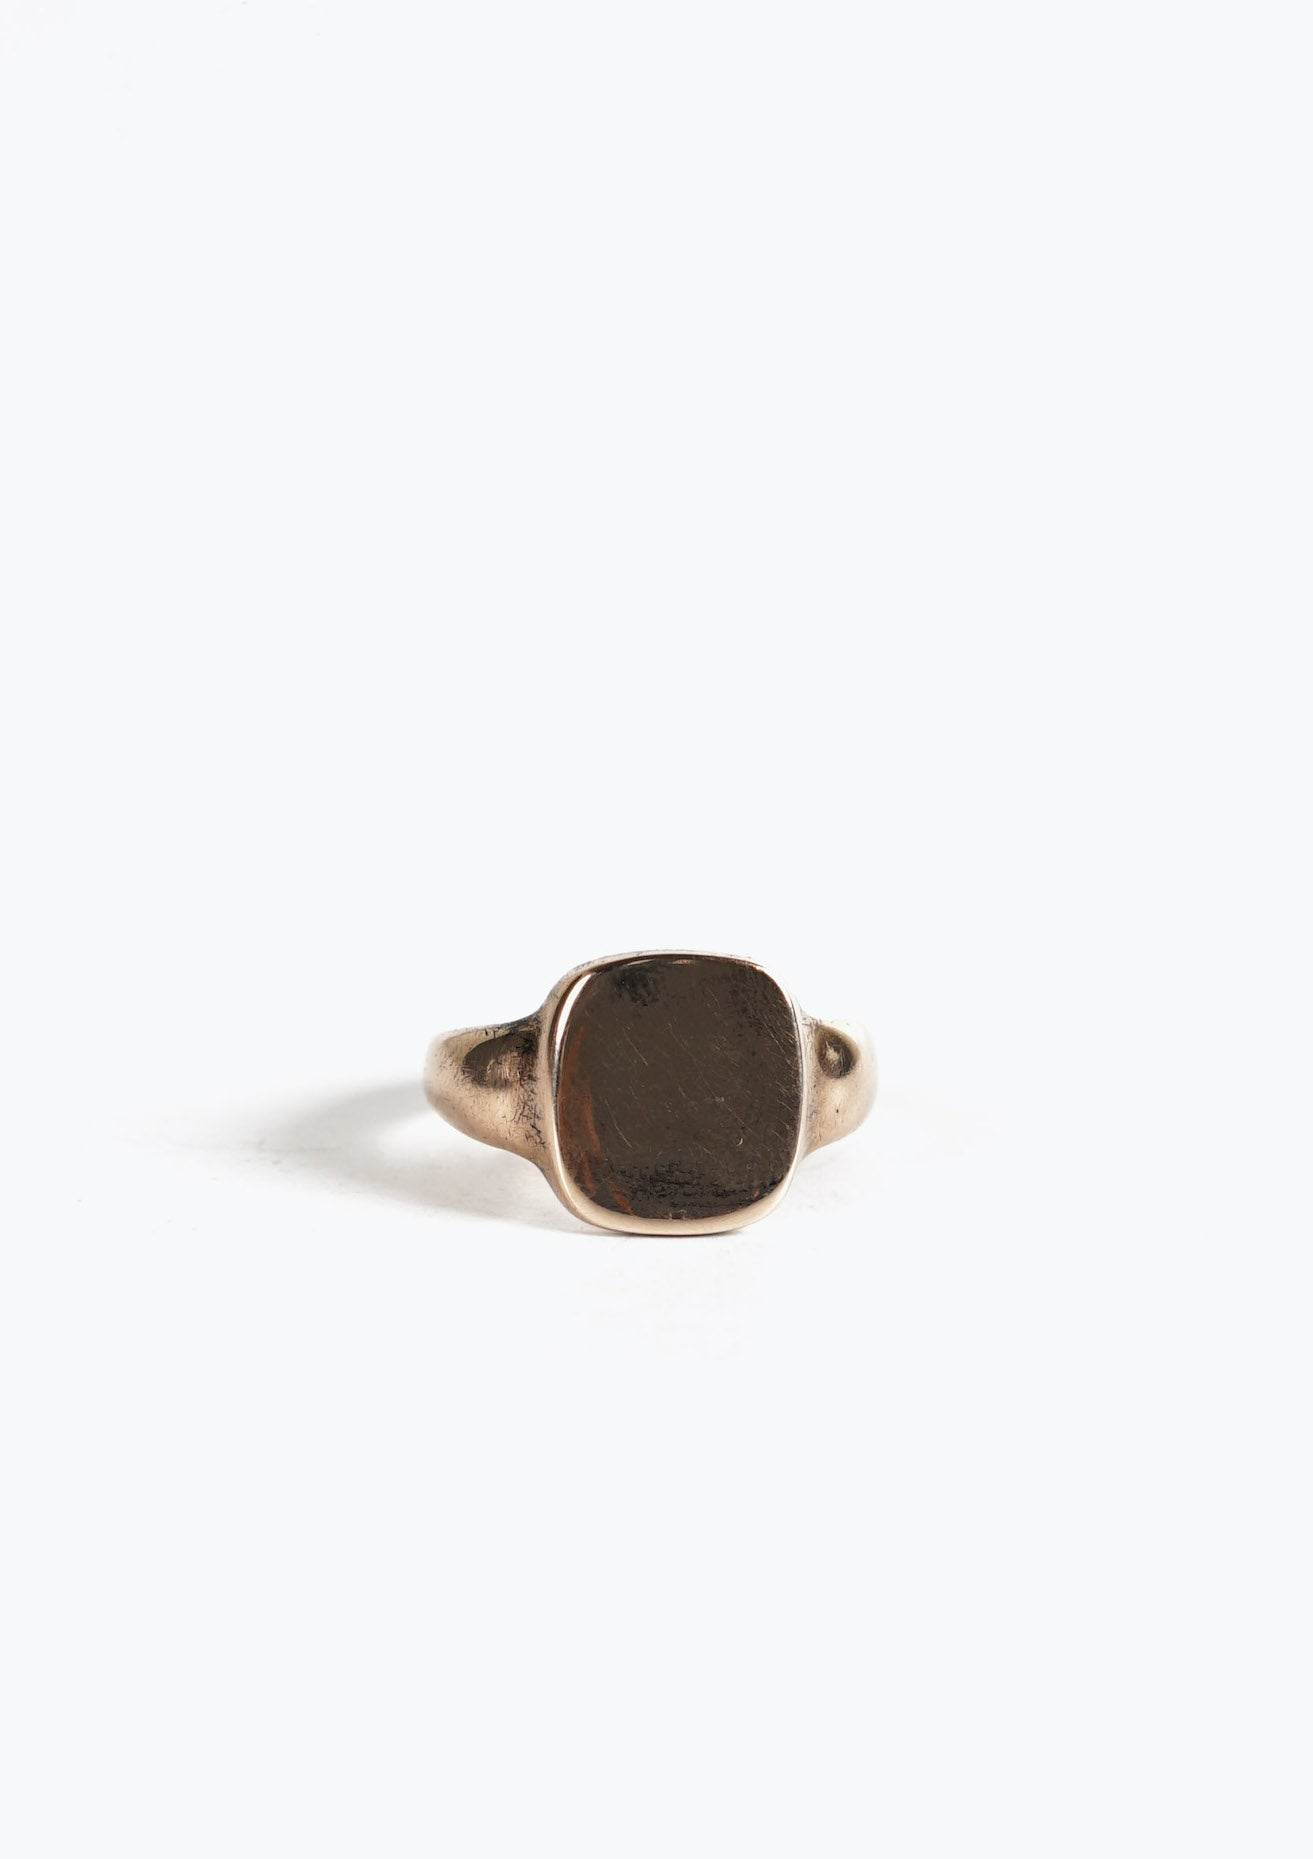 English Gold Signet Ring